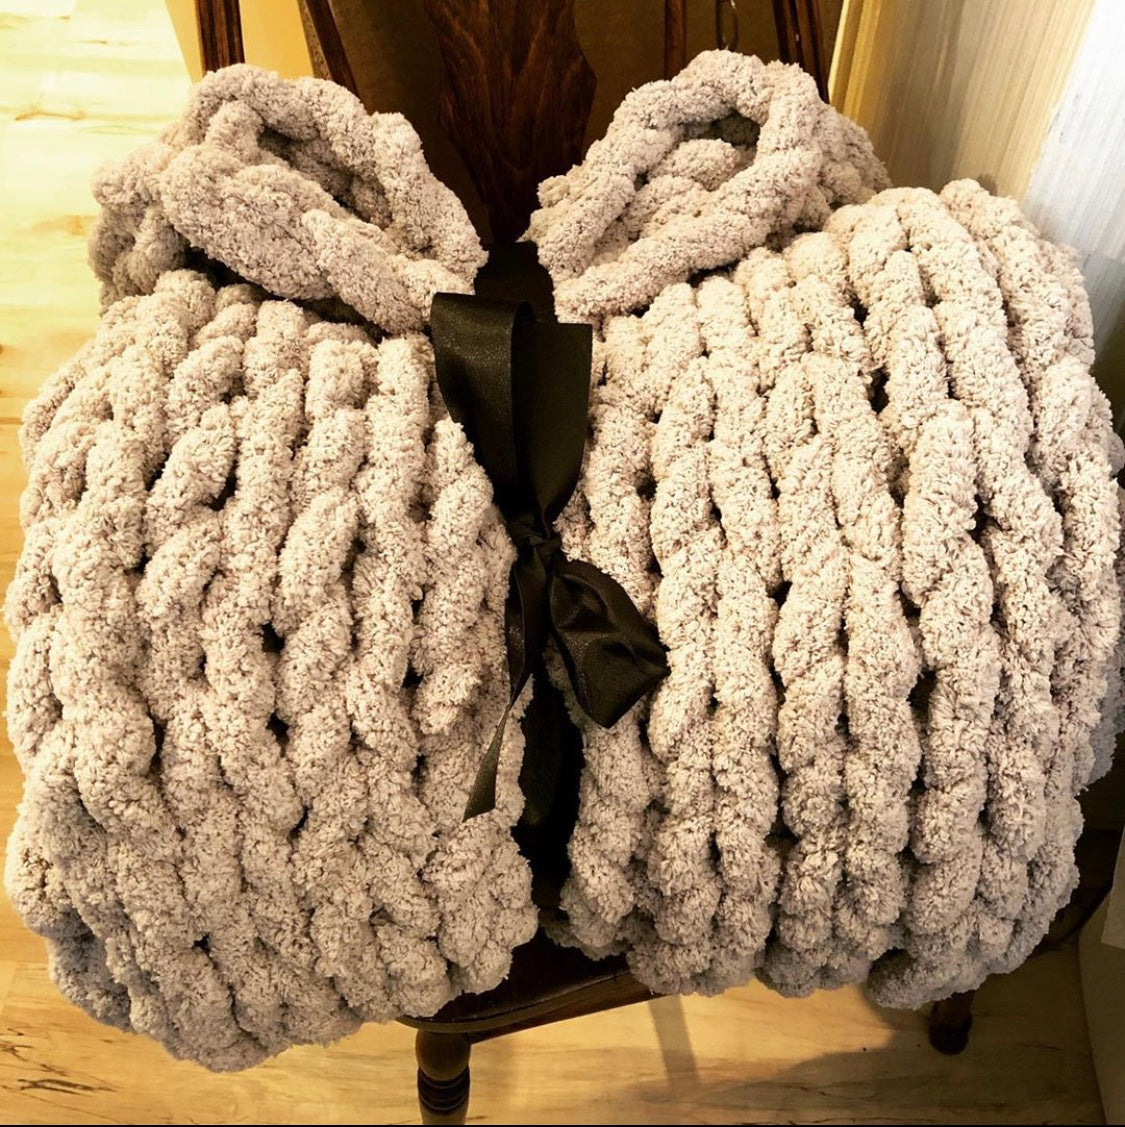 Trish's Private Chunky Blanket Class February 20th 2PM-5PM